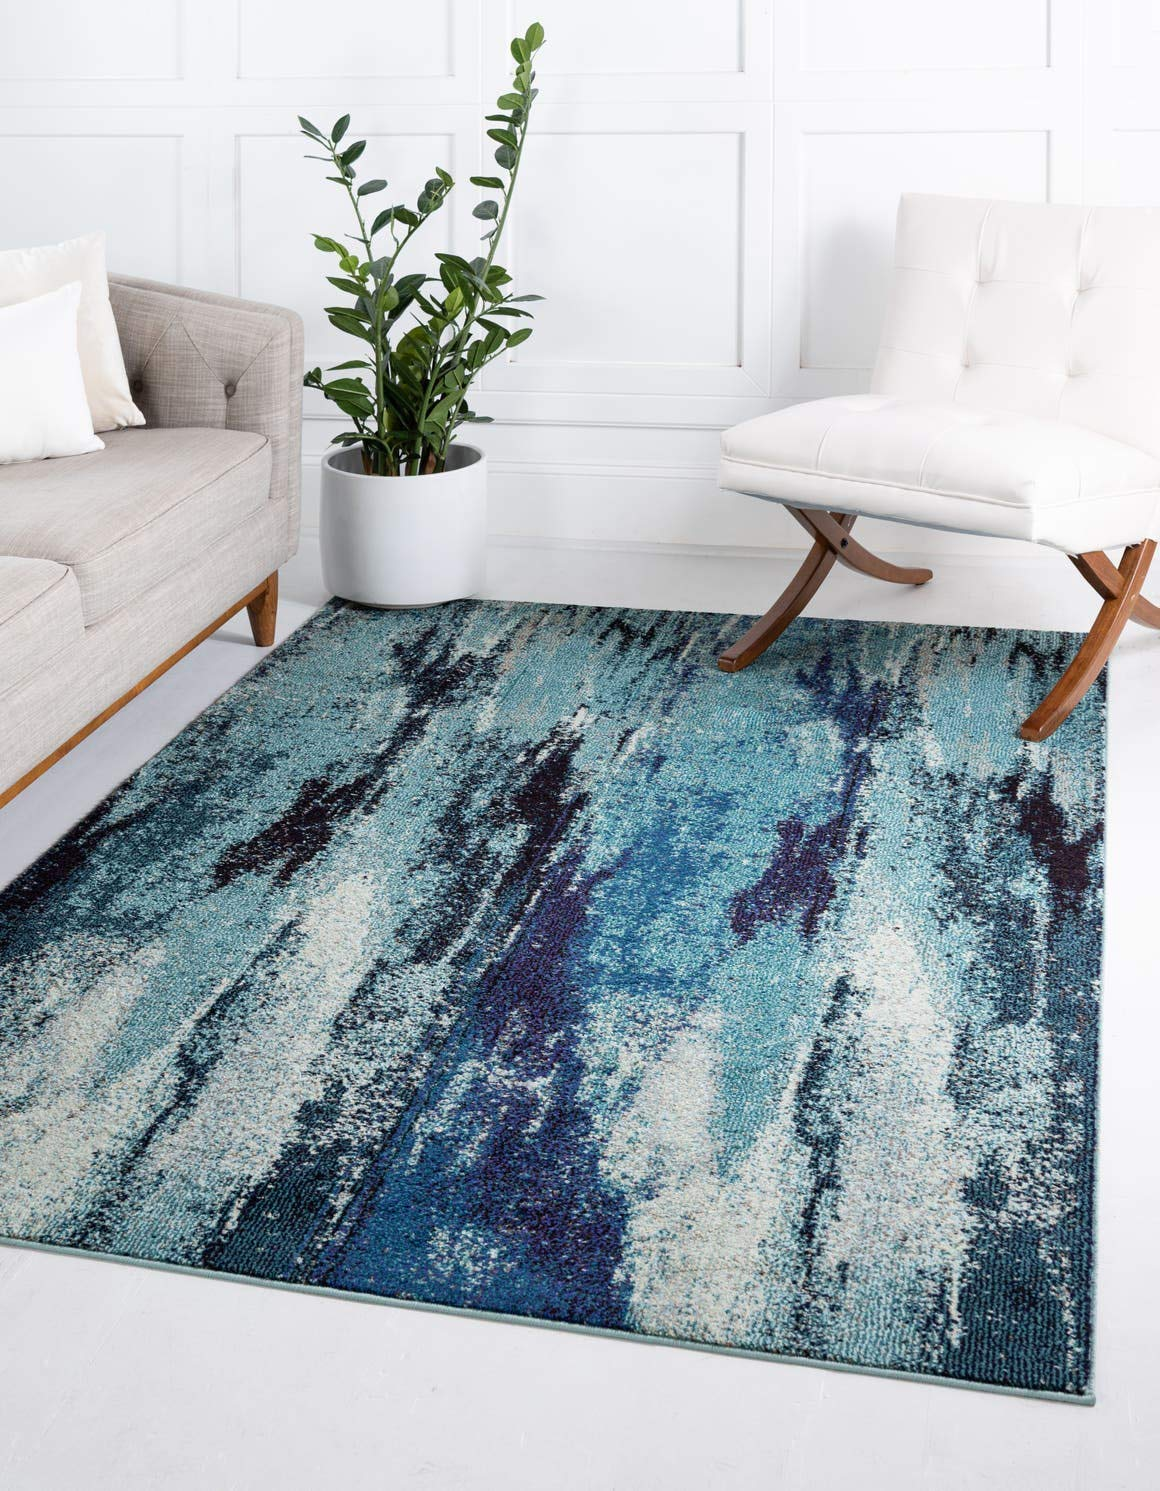 Unique Loom Jardin Collection Vibrant Abstract Blue Area Rug 5 0 x 8 0